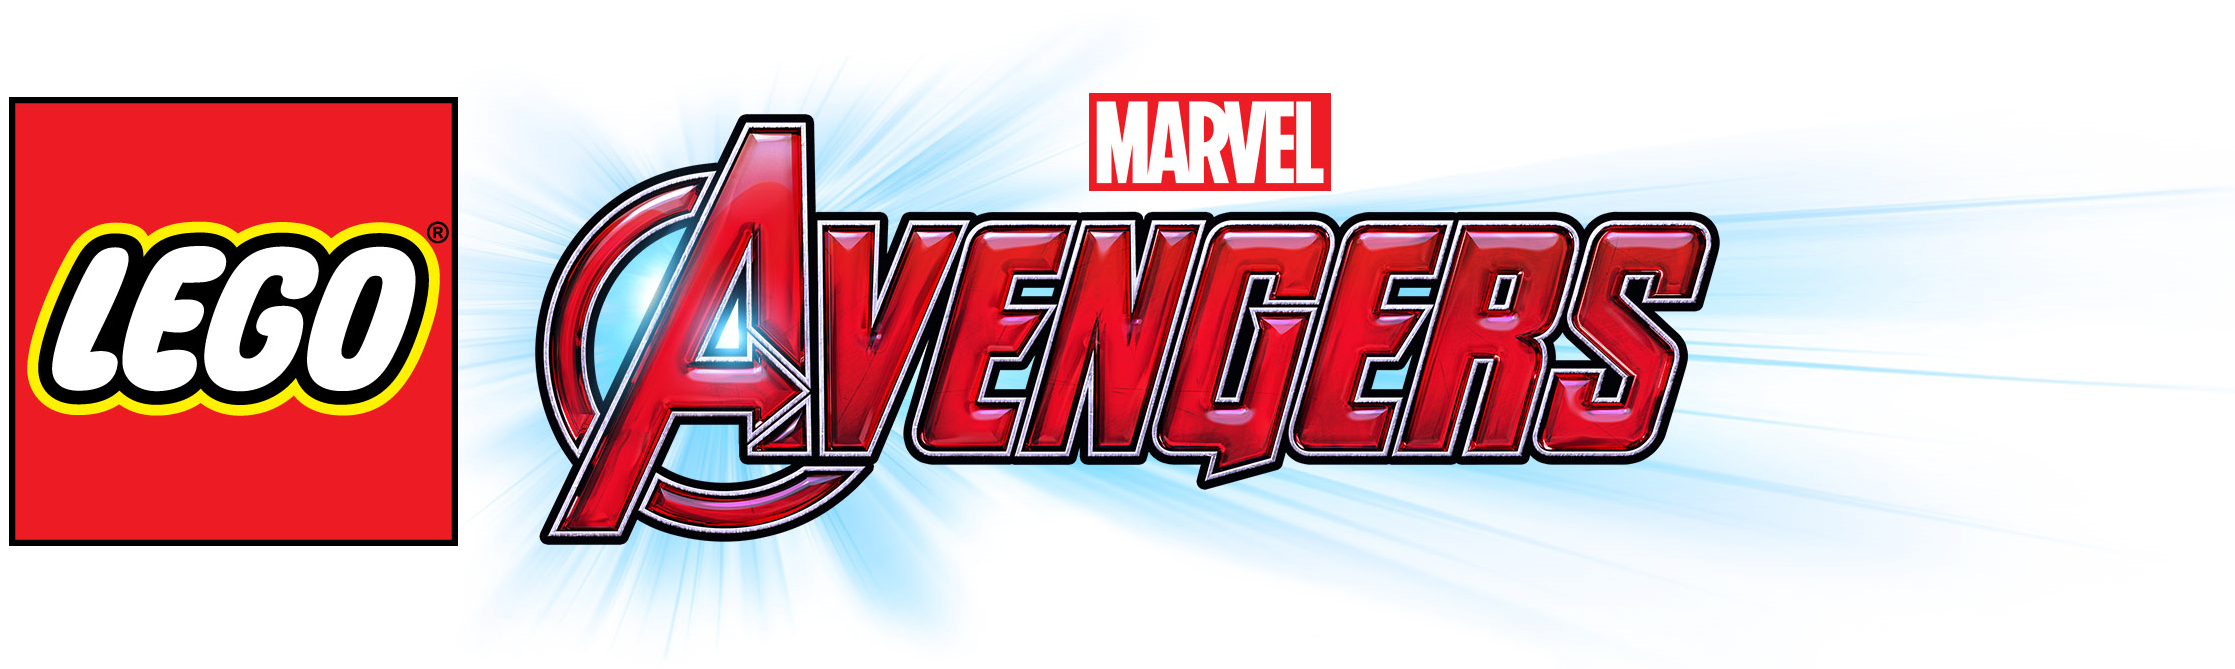 Image Result For Avengers Movie Free